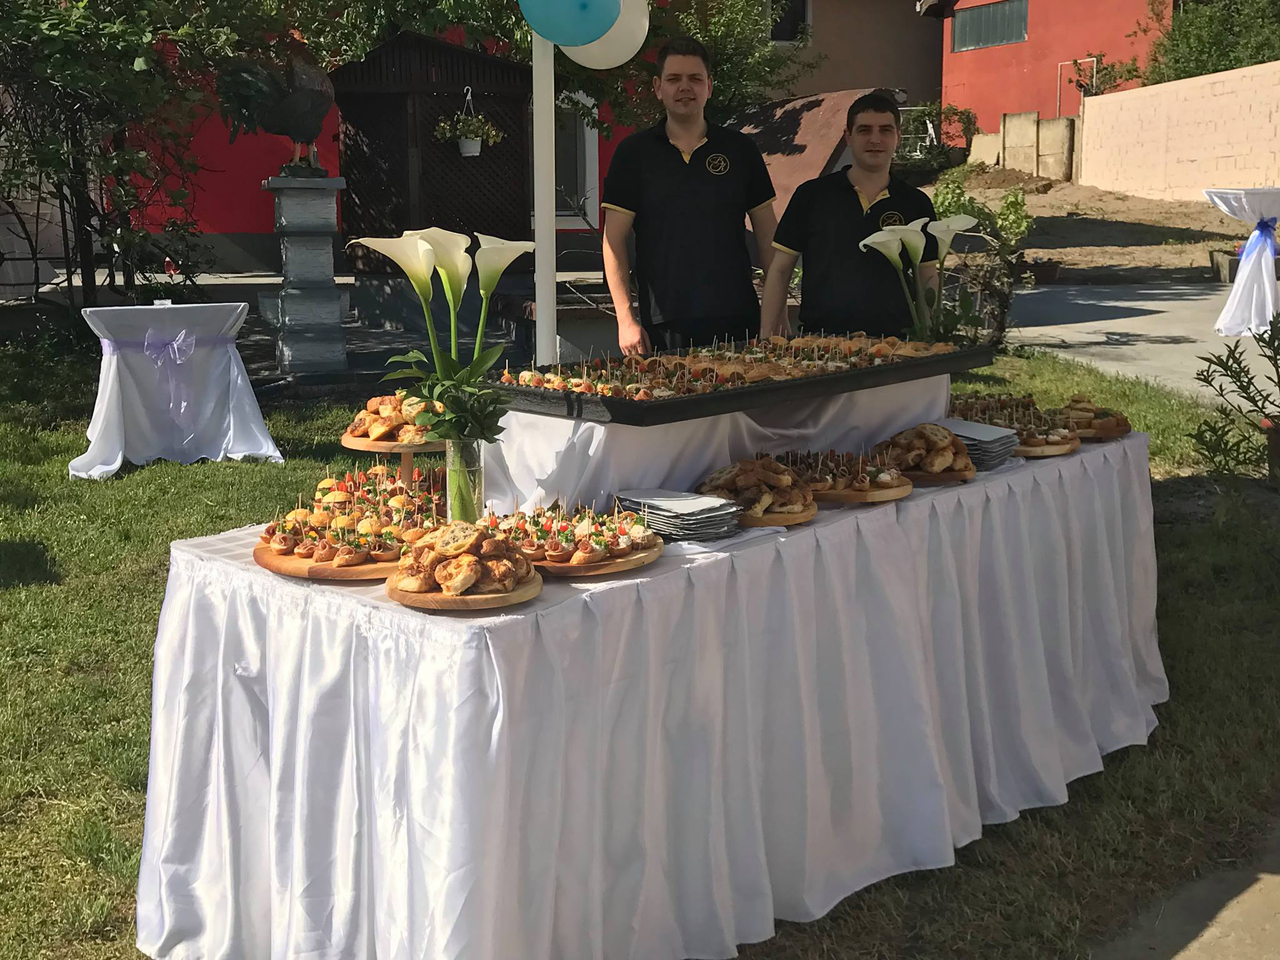 KETERING DREAM EVENT BK Catering Jagodina - Photo 1